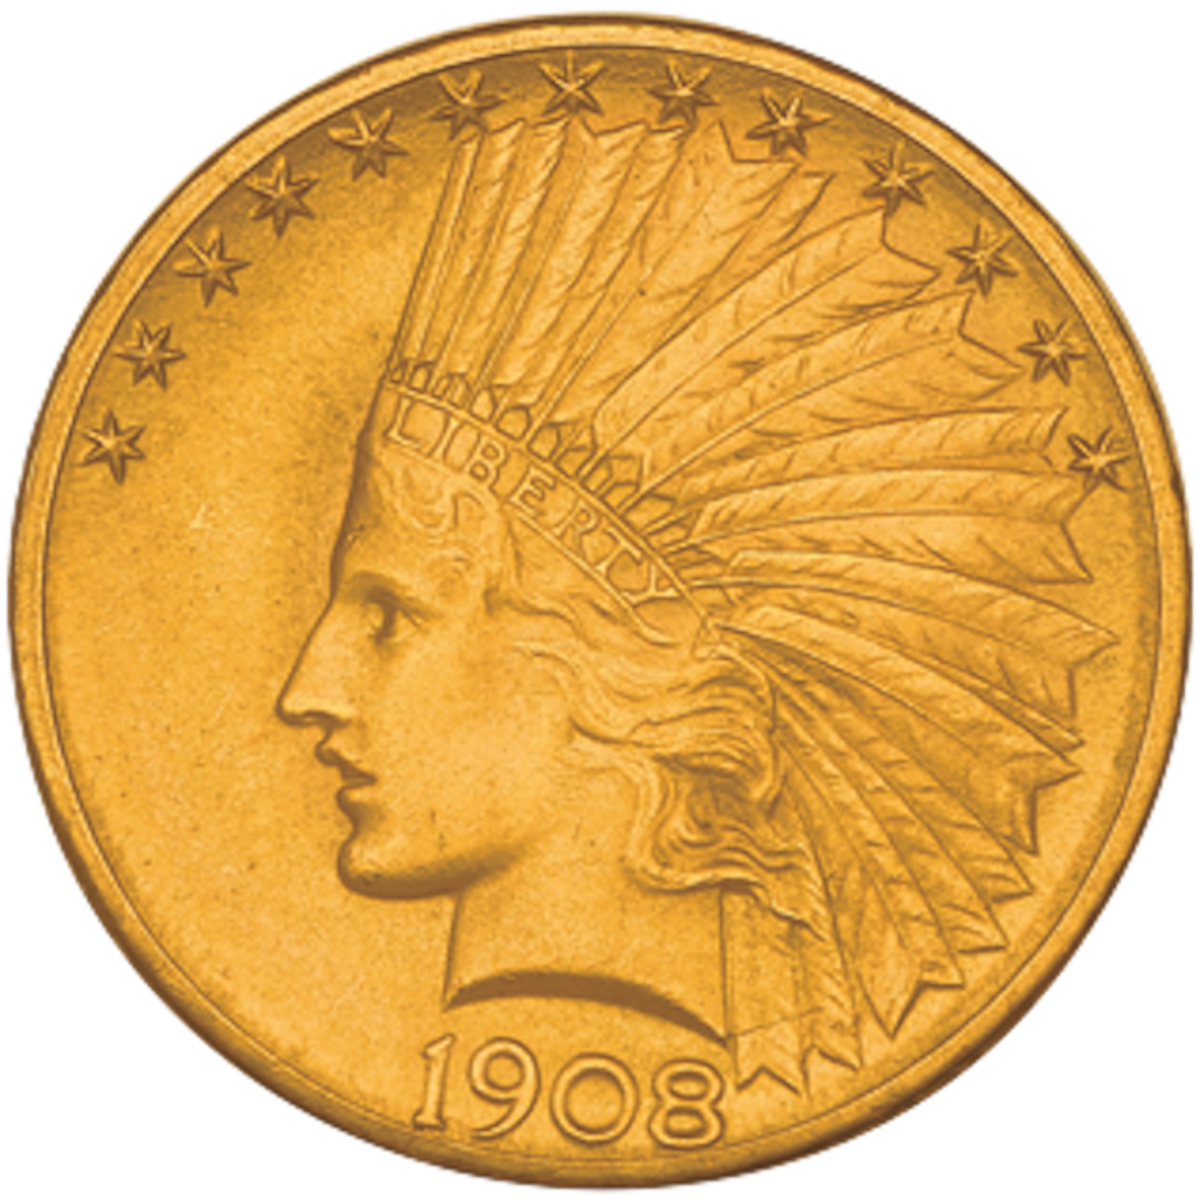 Buying VF or XF $10 Indians might give gold buyers more bang for their buck than simply buying popular bullion coins